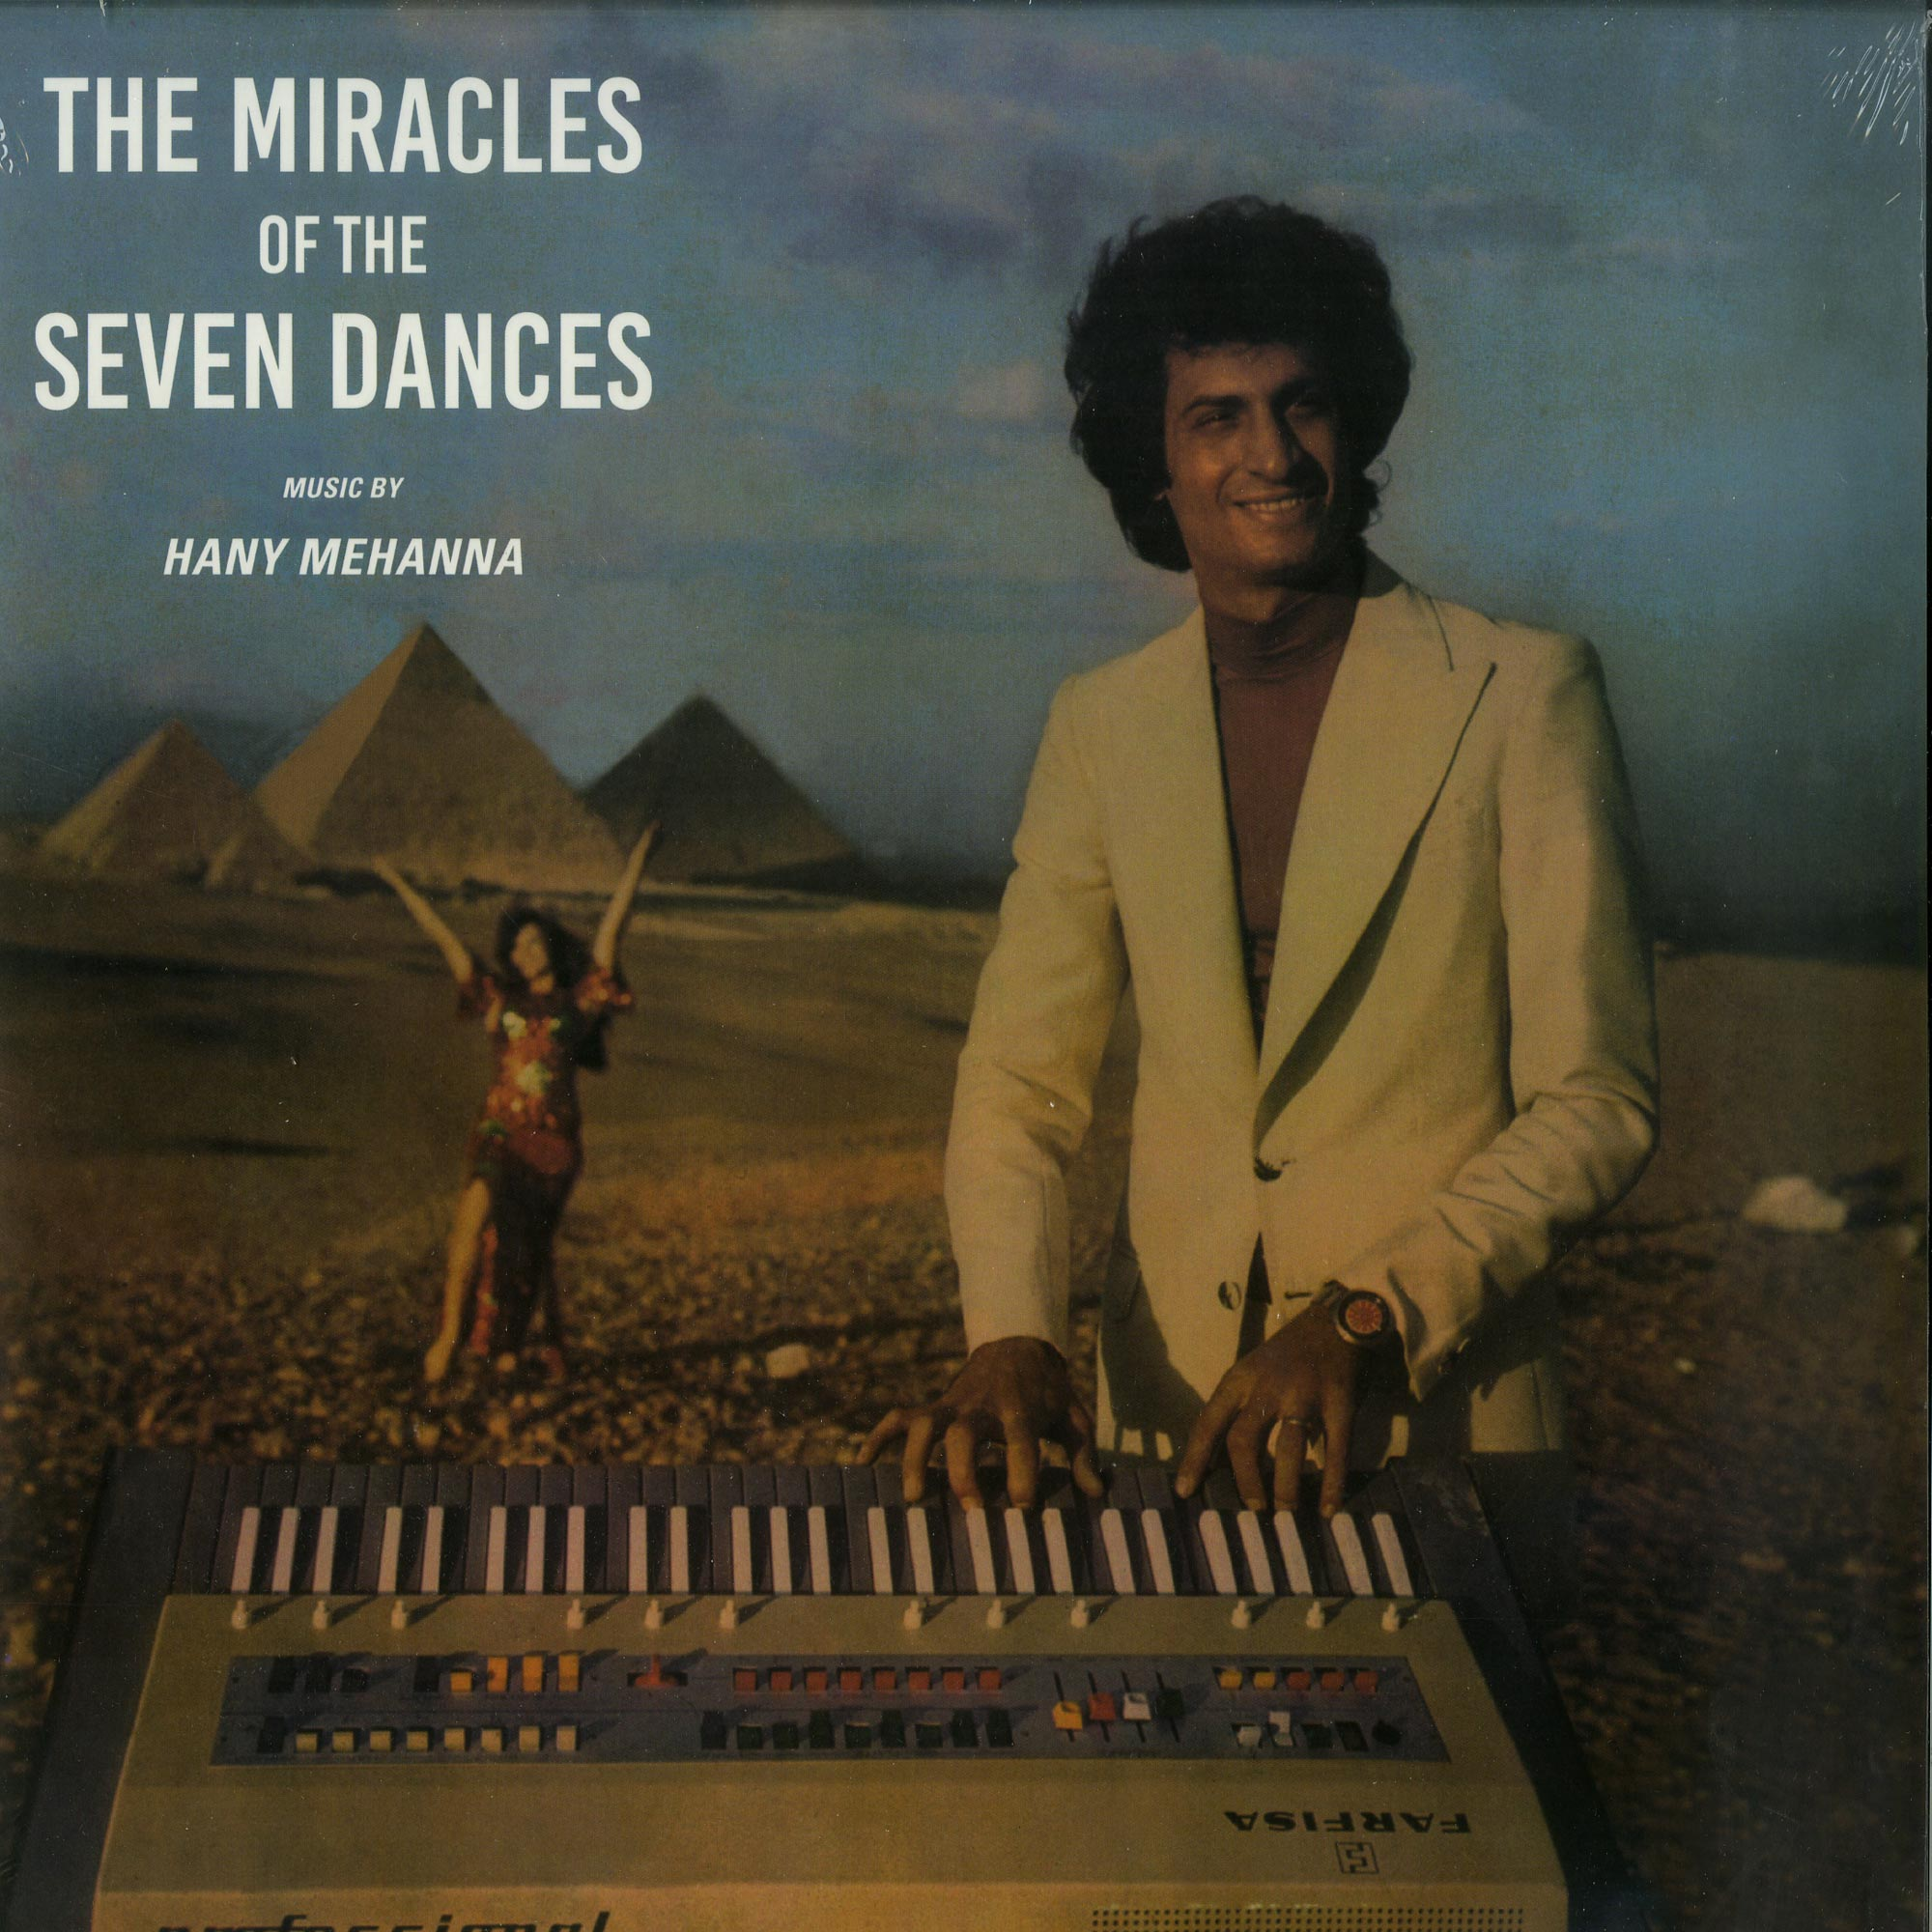 Hany Mehanna - THE MIRACLE OF THE SEVEN DANCES